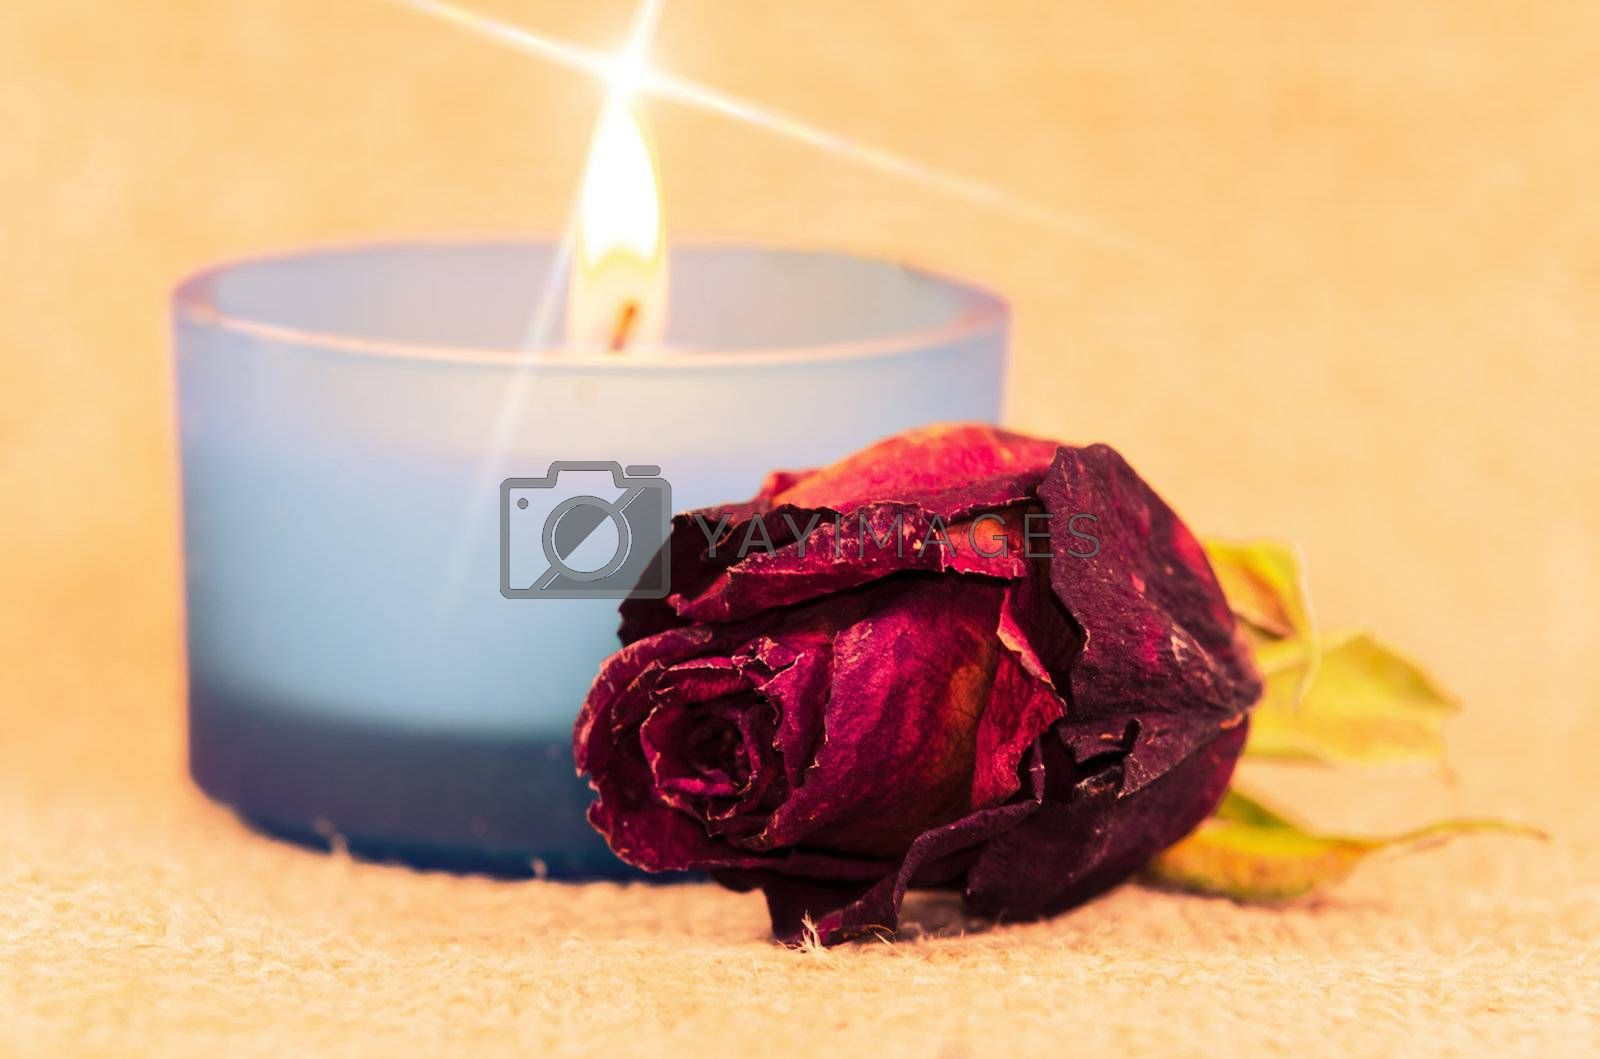 faded rose,candle in the background